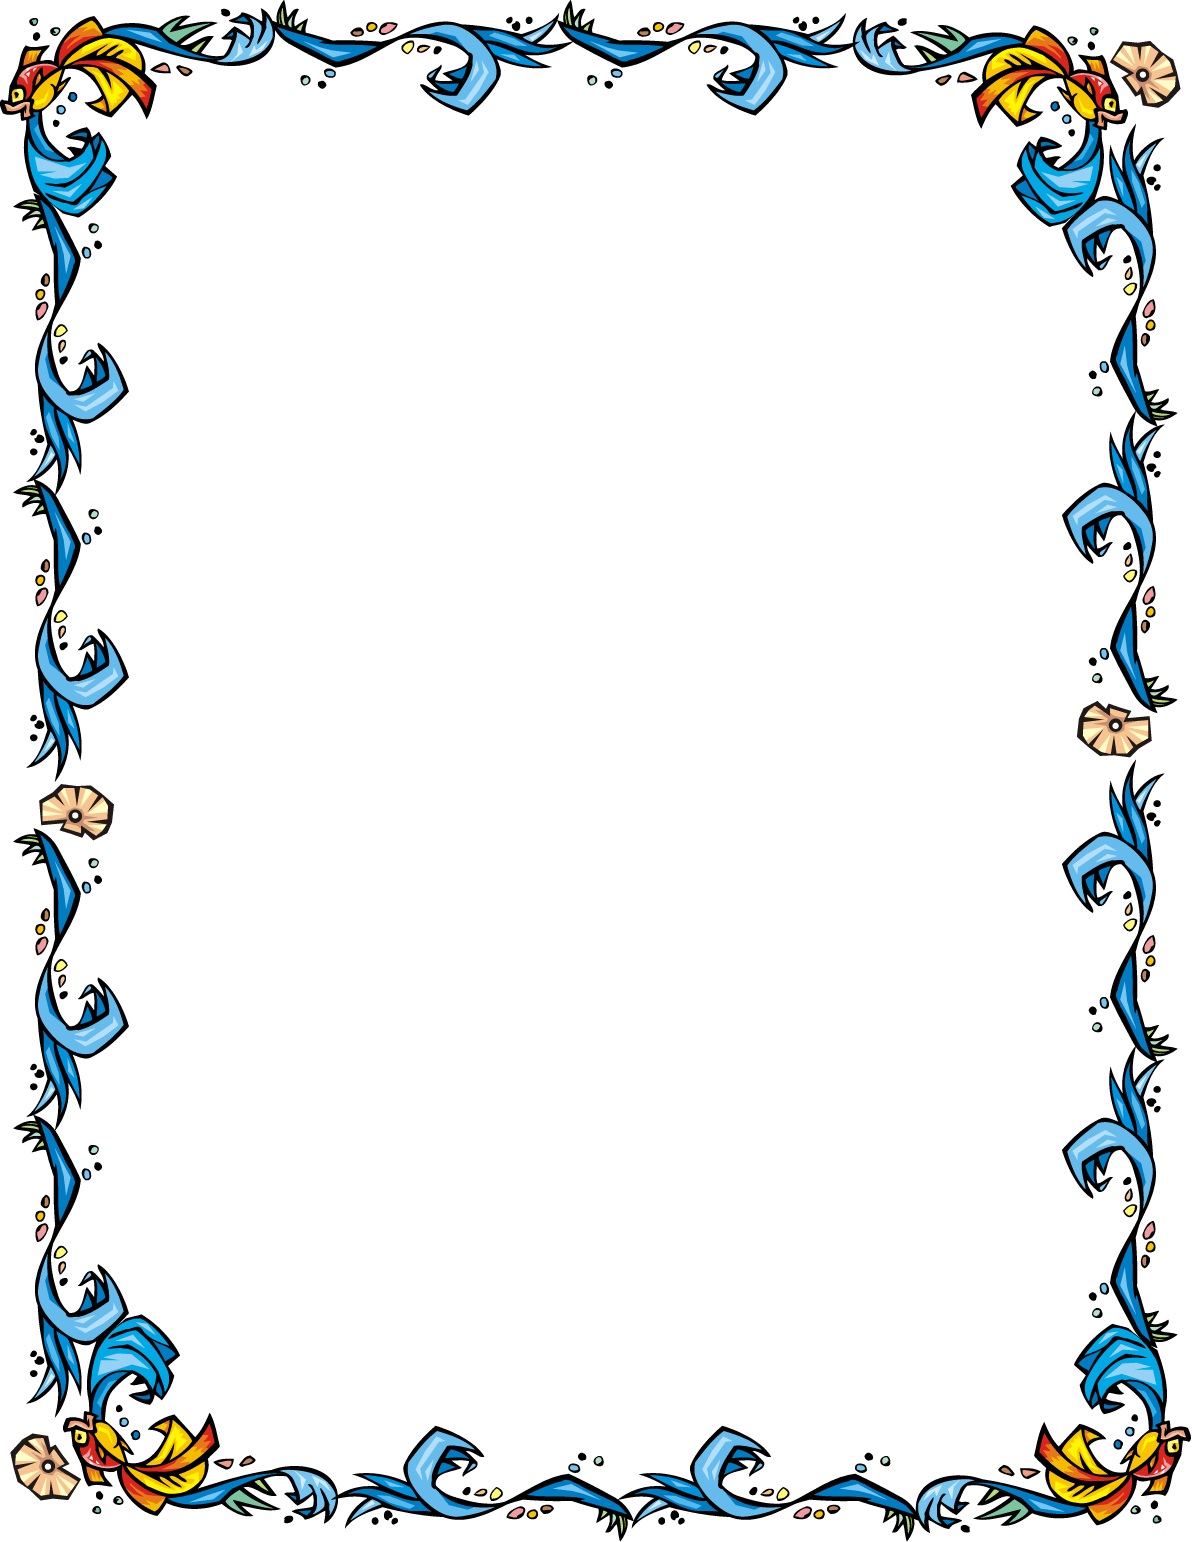 Swimming cliparts free collection. Clipart boat border